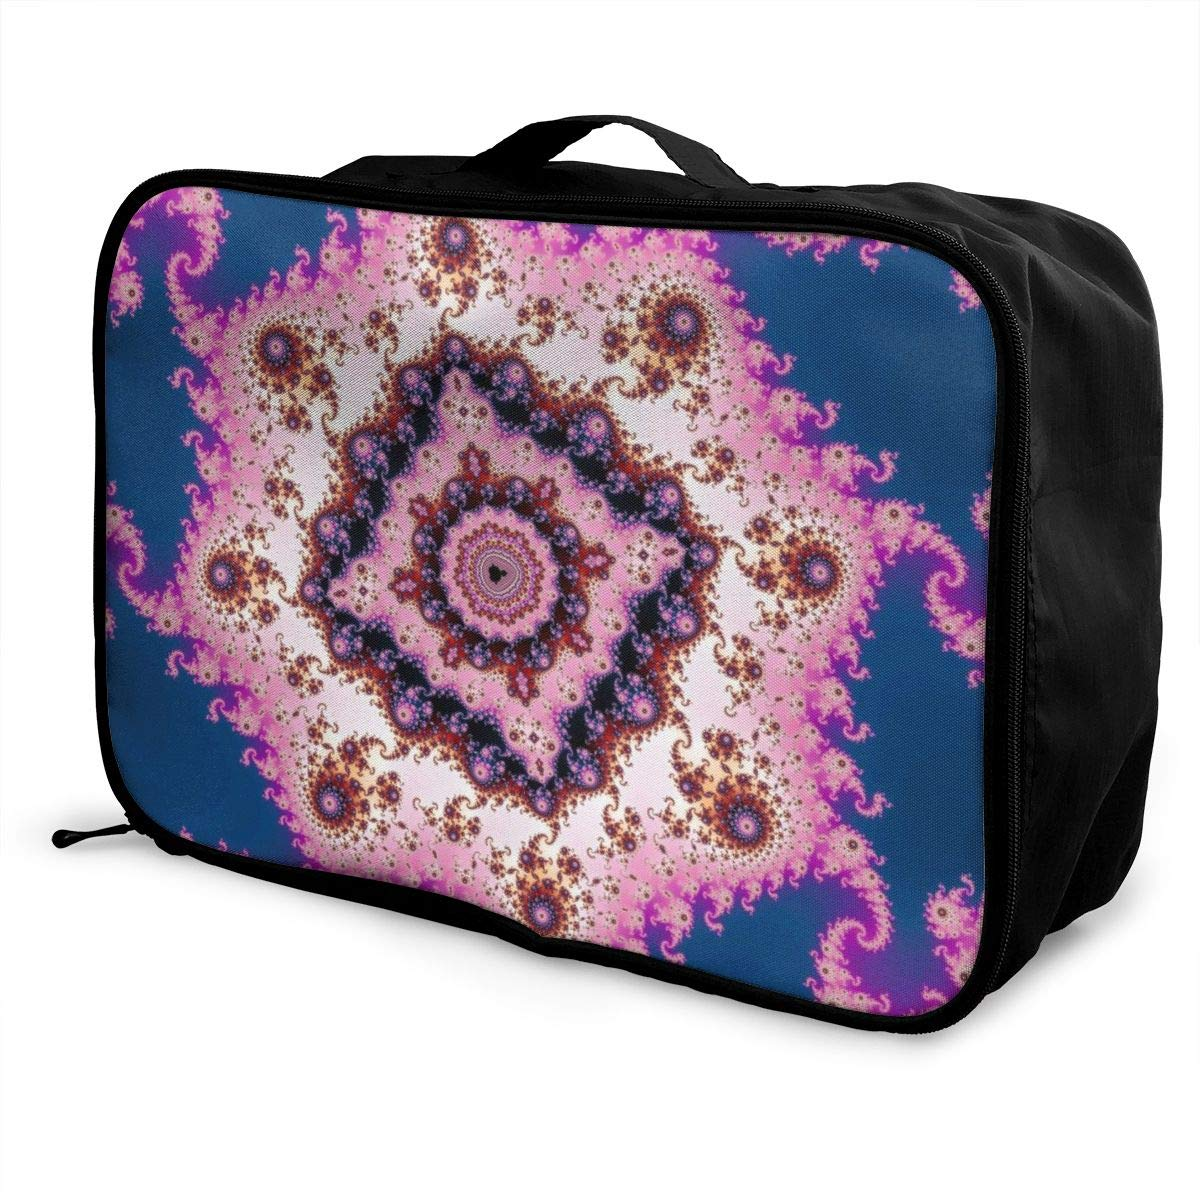 Sacred Geometry Fractals Pink Navy Travel Lightweight Waterproof Foldable Storage Portable Luggage Duffle Tote Bag Large Capacity In Trolley Handle Bags 6x11x15 Inch